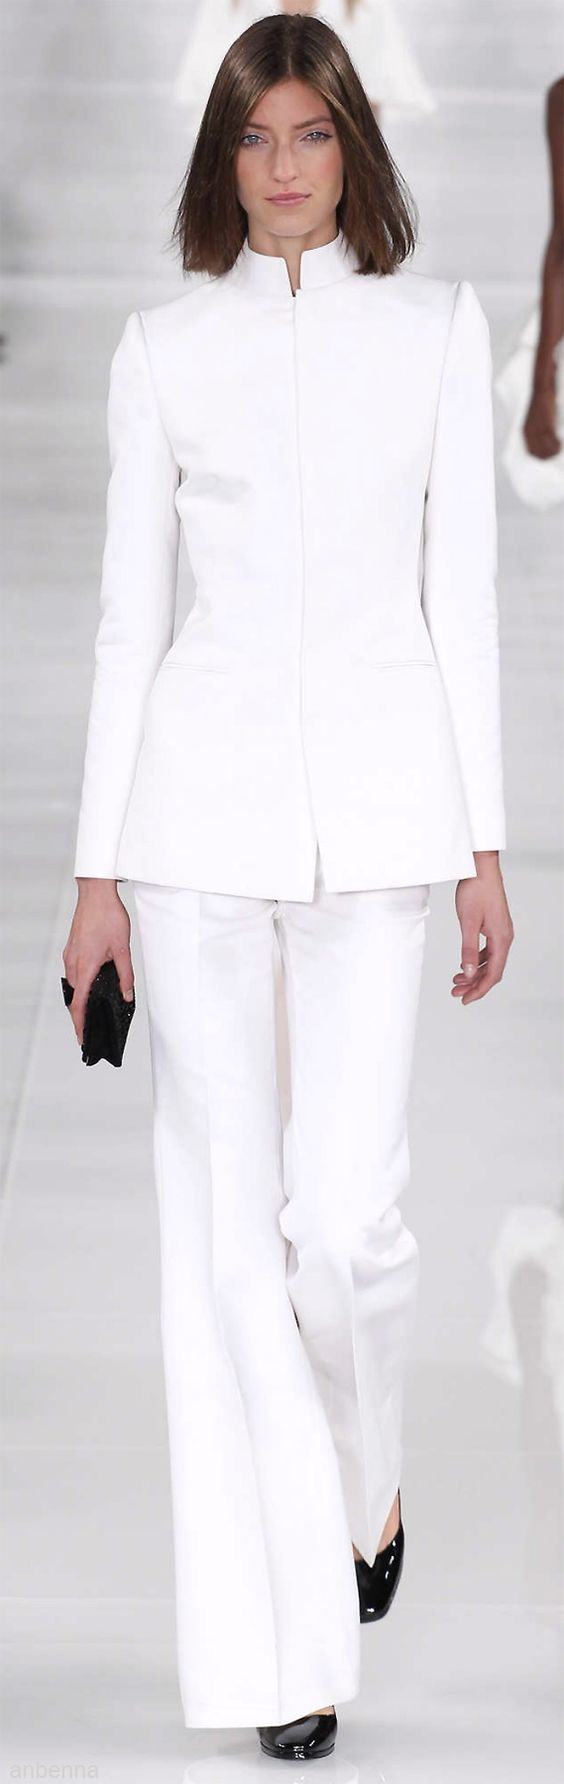 Ralph Lauren - this is a great outfit for my work! Strength and elegance